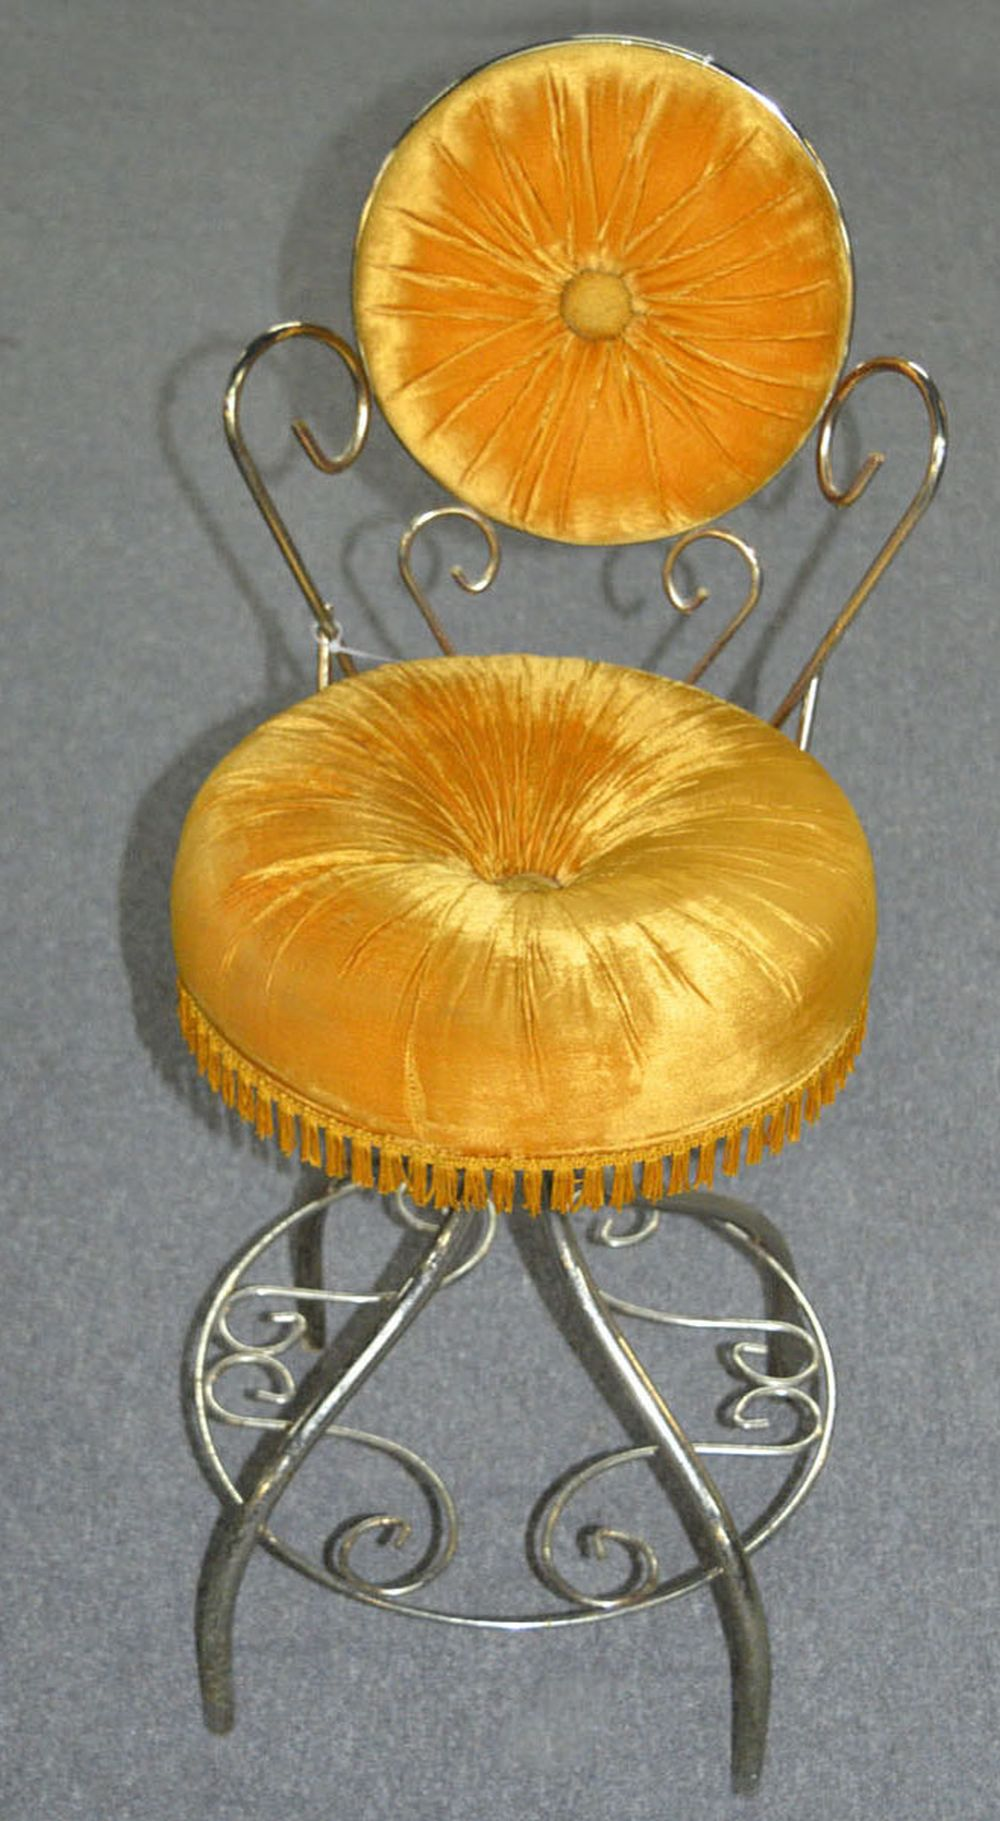 Sold Price Vintage French Vanity Chair May 2 0119 7 00 Pm Edt